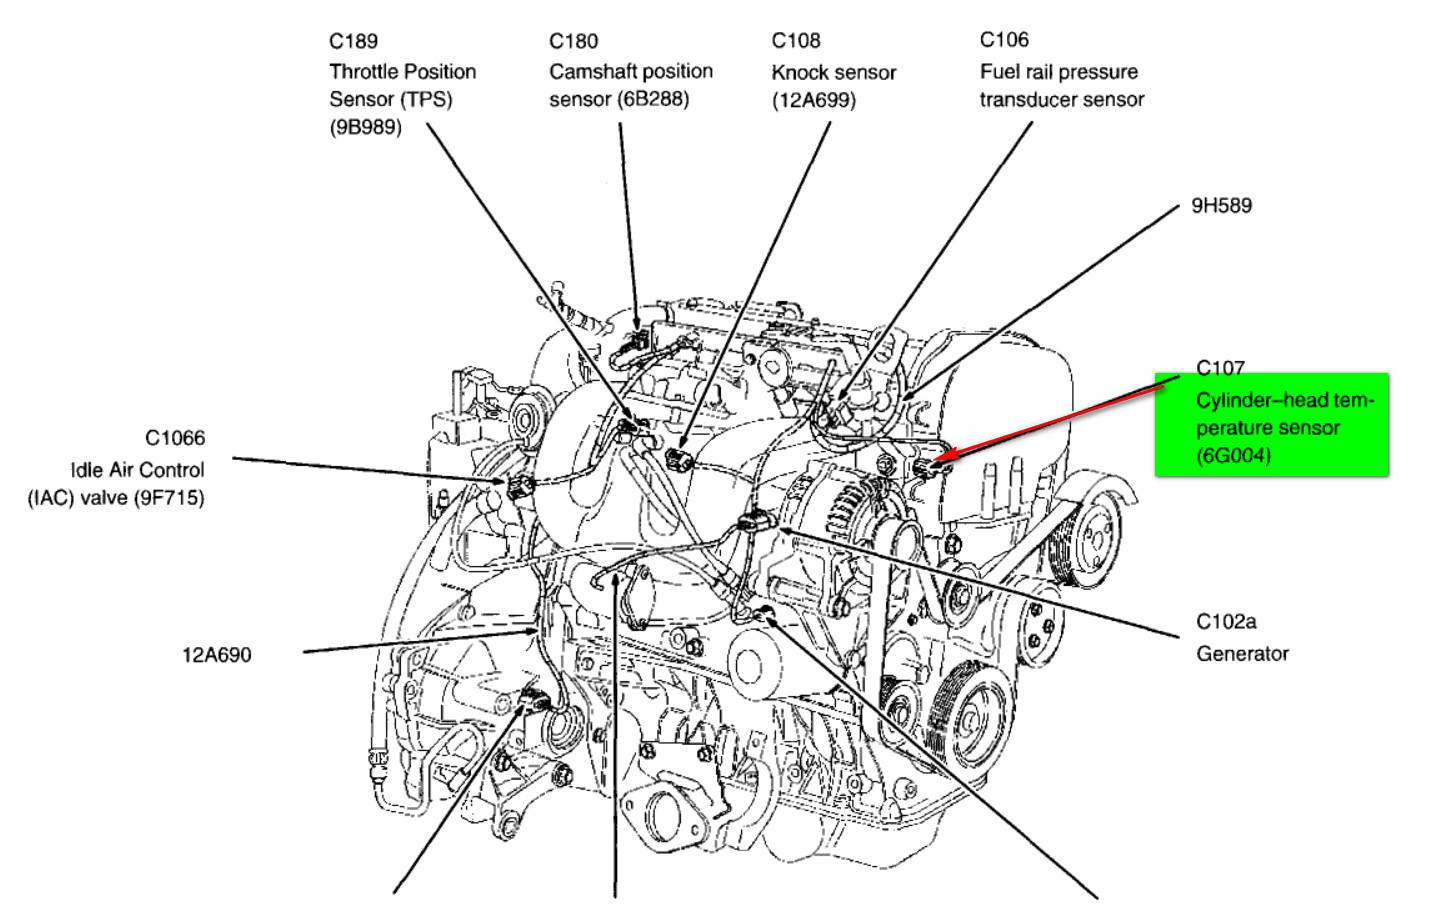 2007 Expedition Engine Diagram Wiring Master Blogs 2006 Honda Pilot With Labels Free Image Library Rh 16 Skriptoase De 2003 Ford